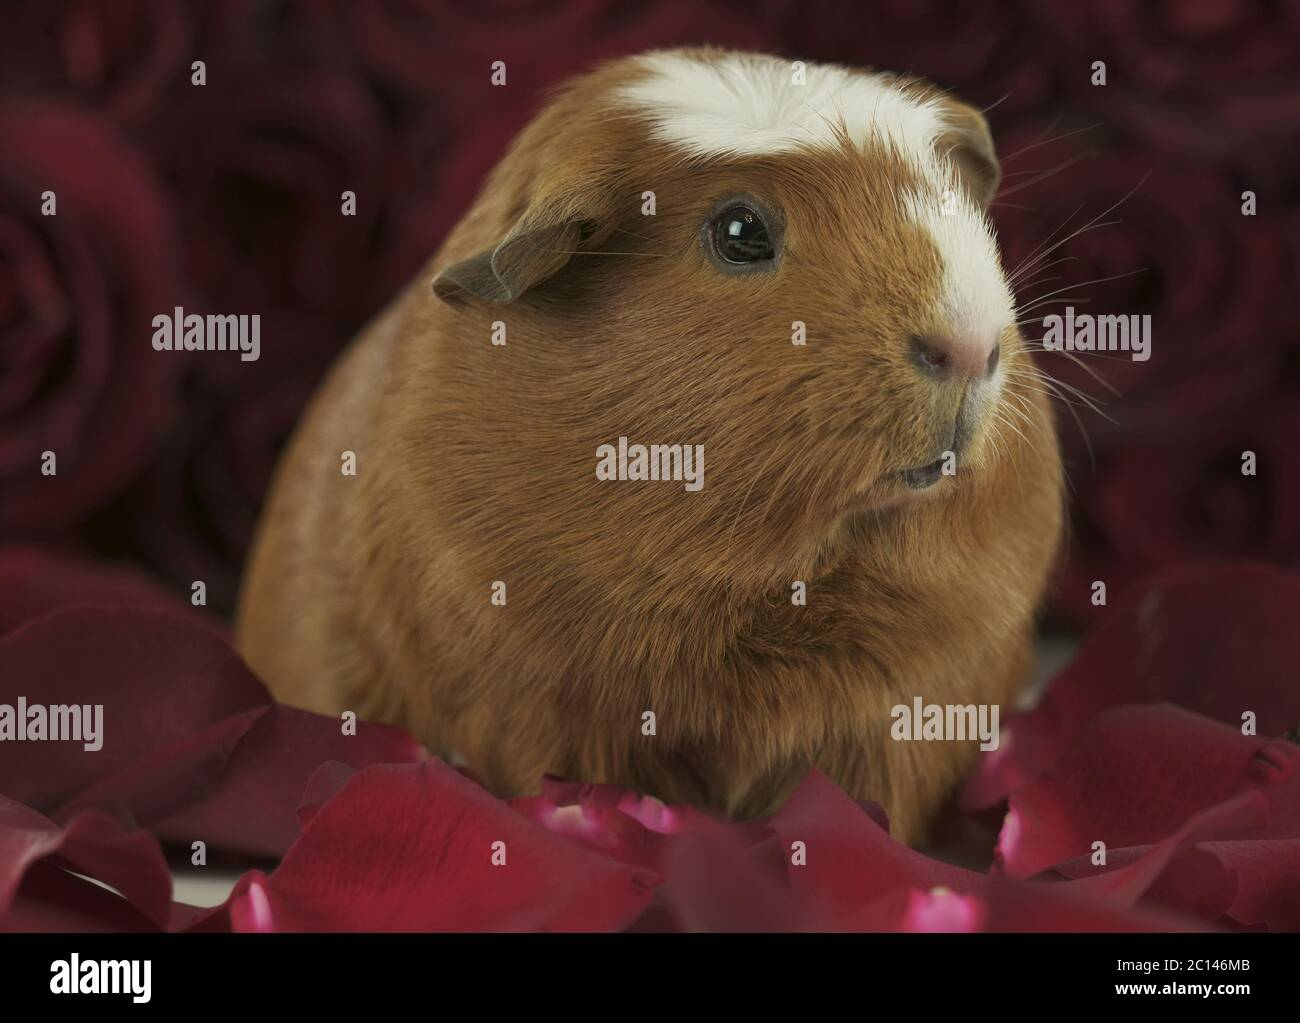 Crested Guinea Pig Red White High Resolution Stock Photography And Images Alamy